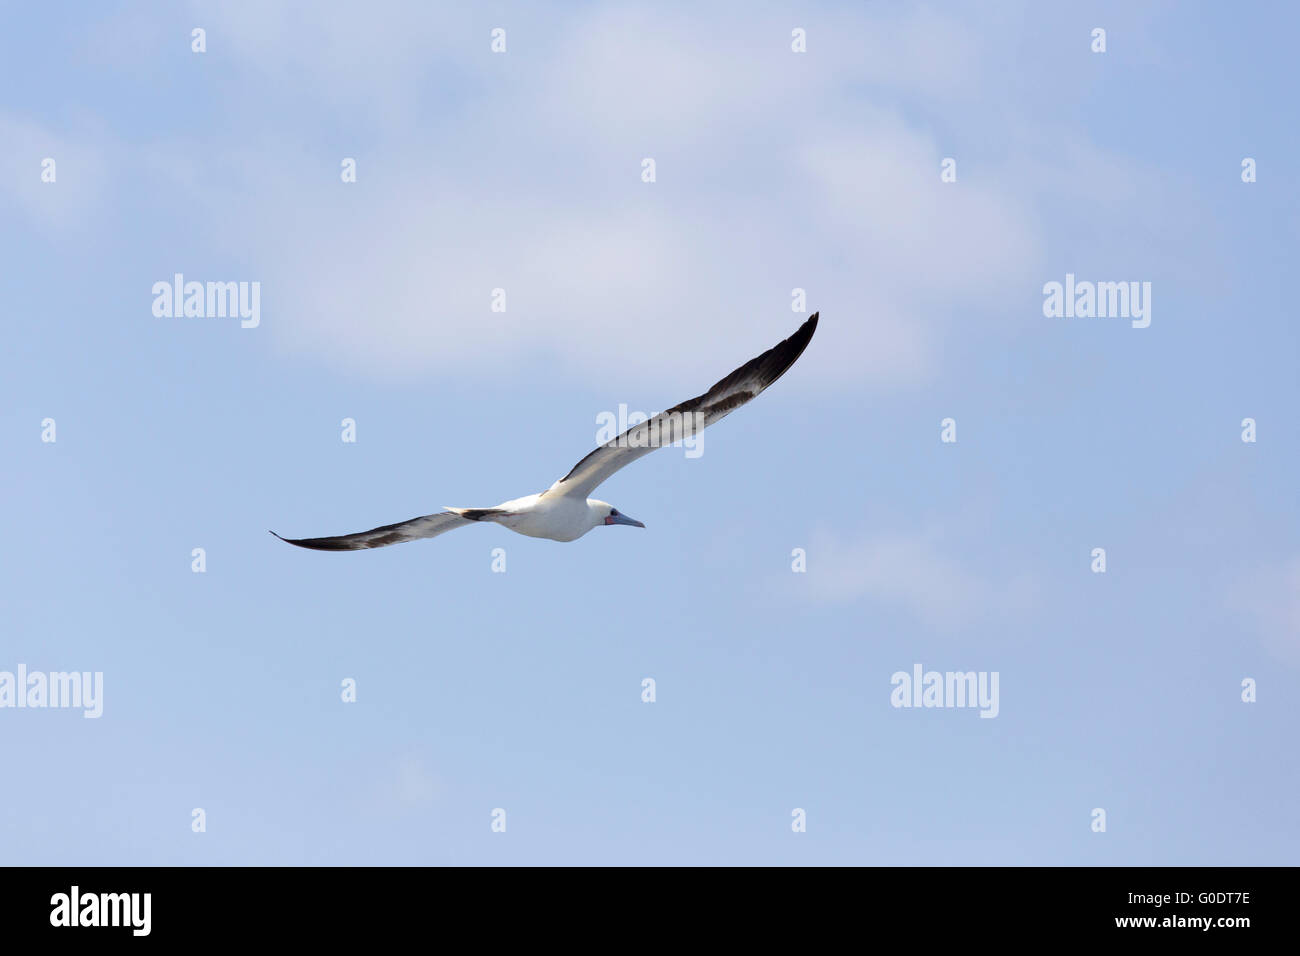 Seagull flying high up in the sky - Stock Image